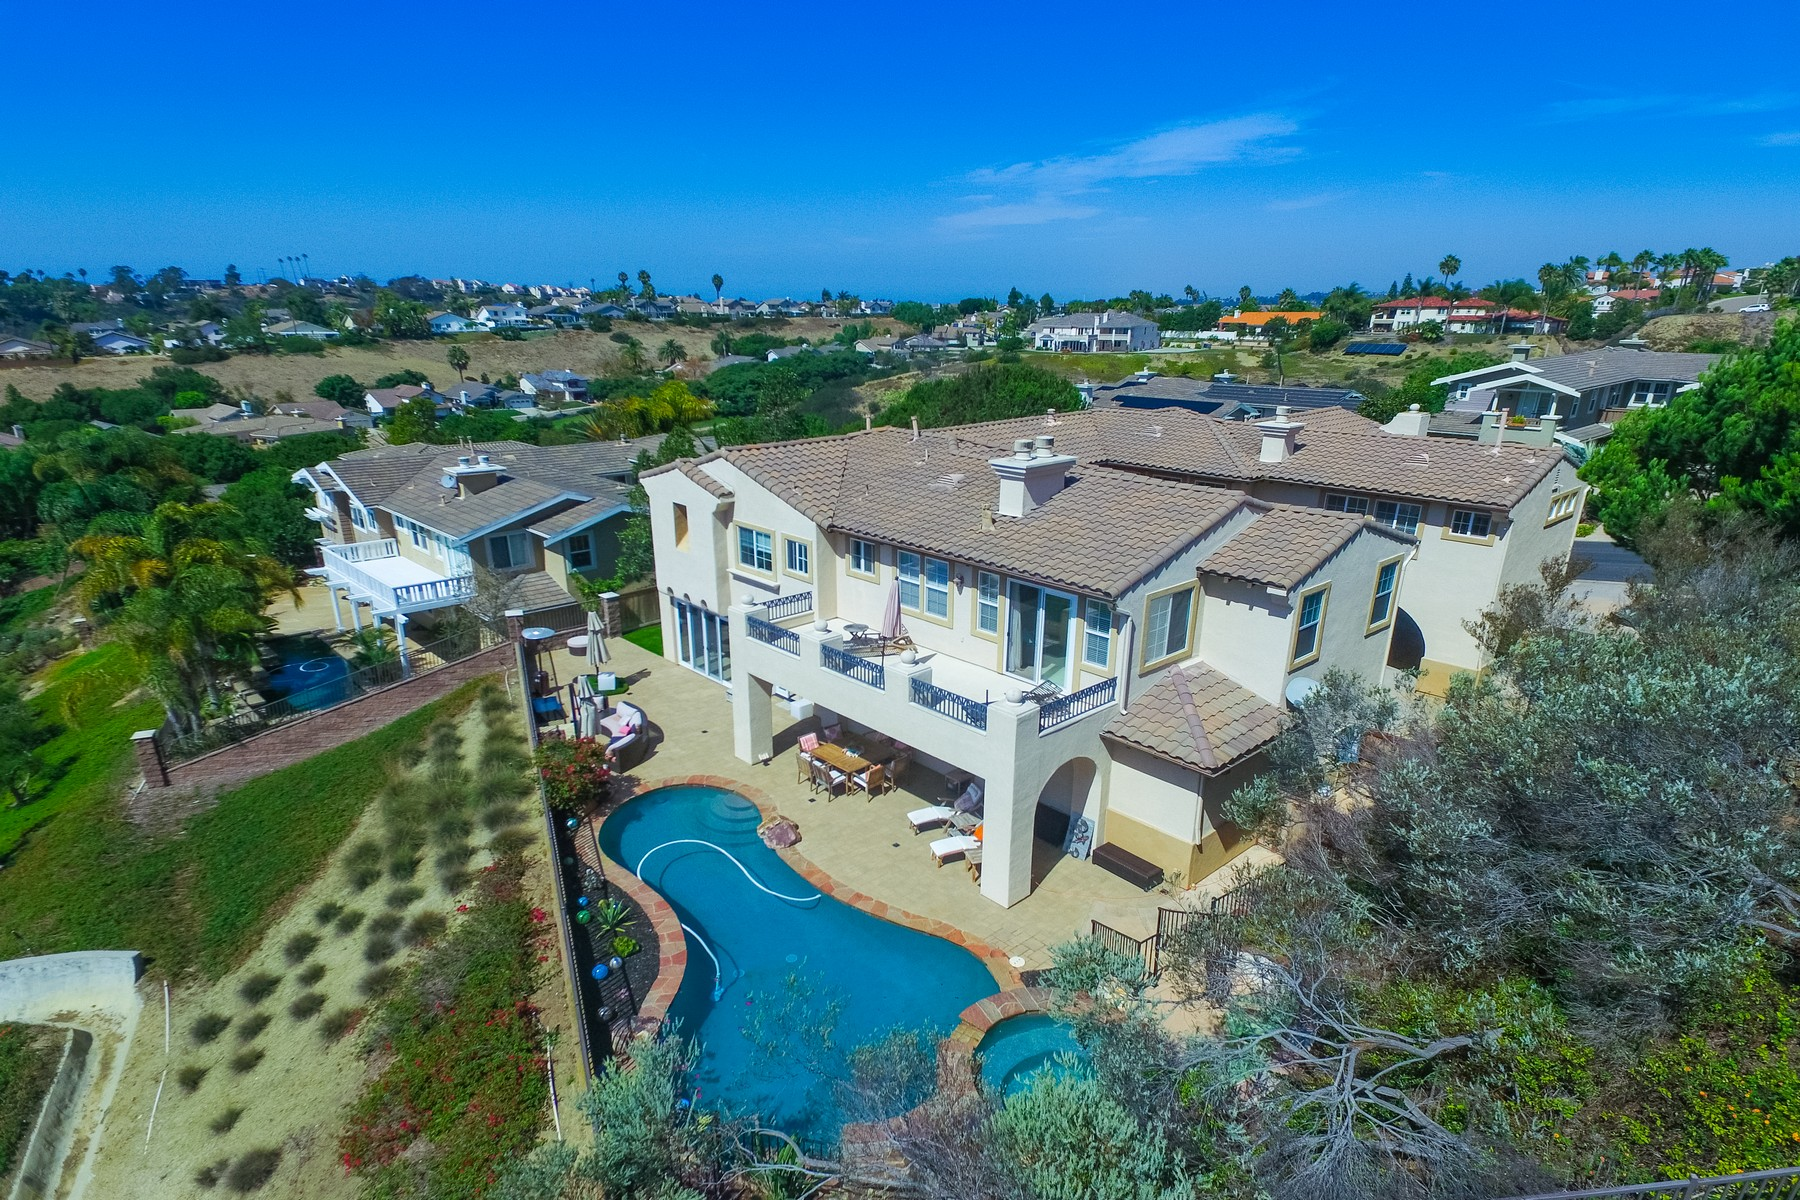 Additional photo for property listing at 1345 Ravean Court  Encinitas, Калифорния 92024 Соединенные Штаты